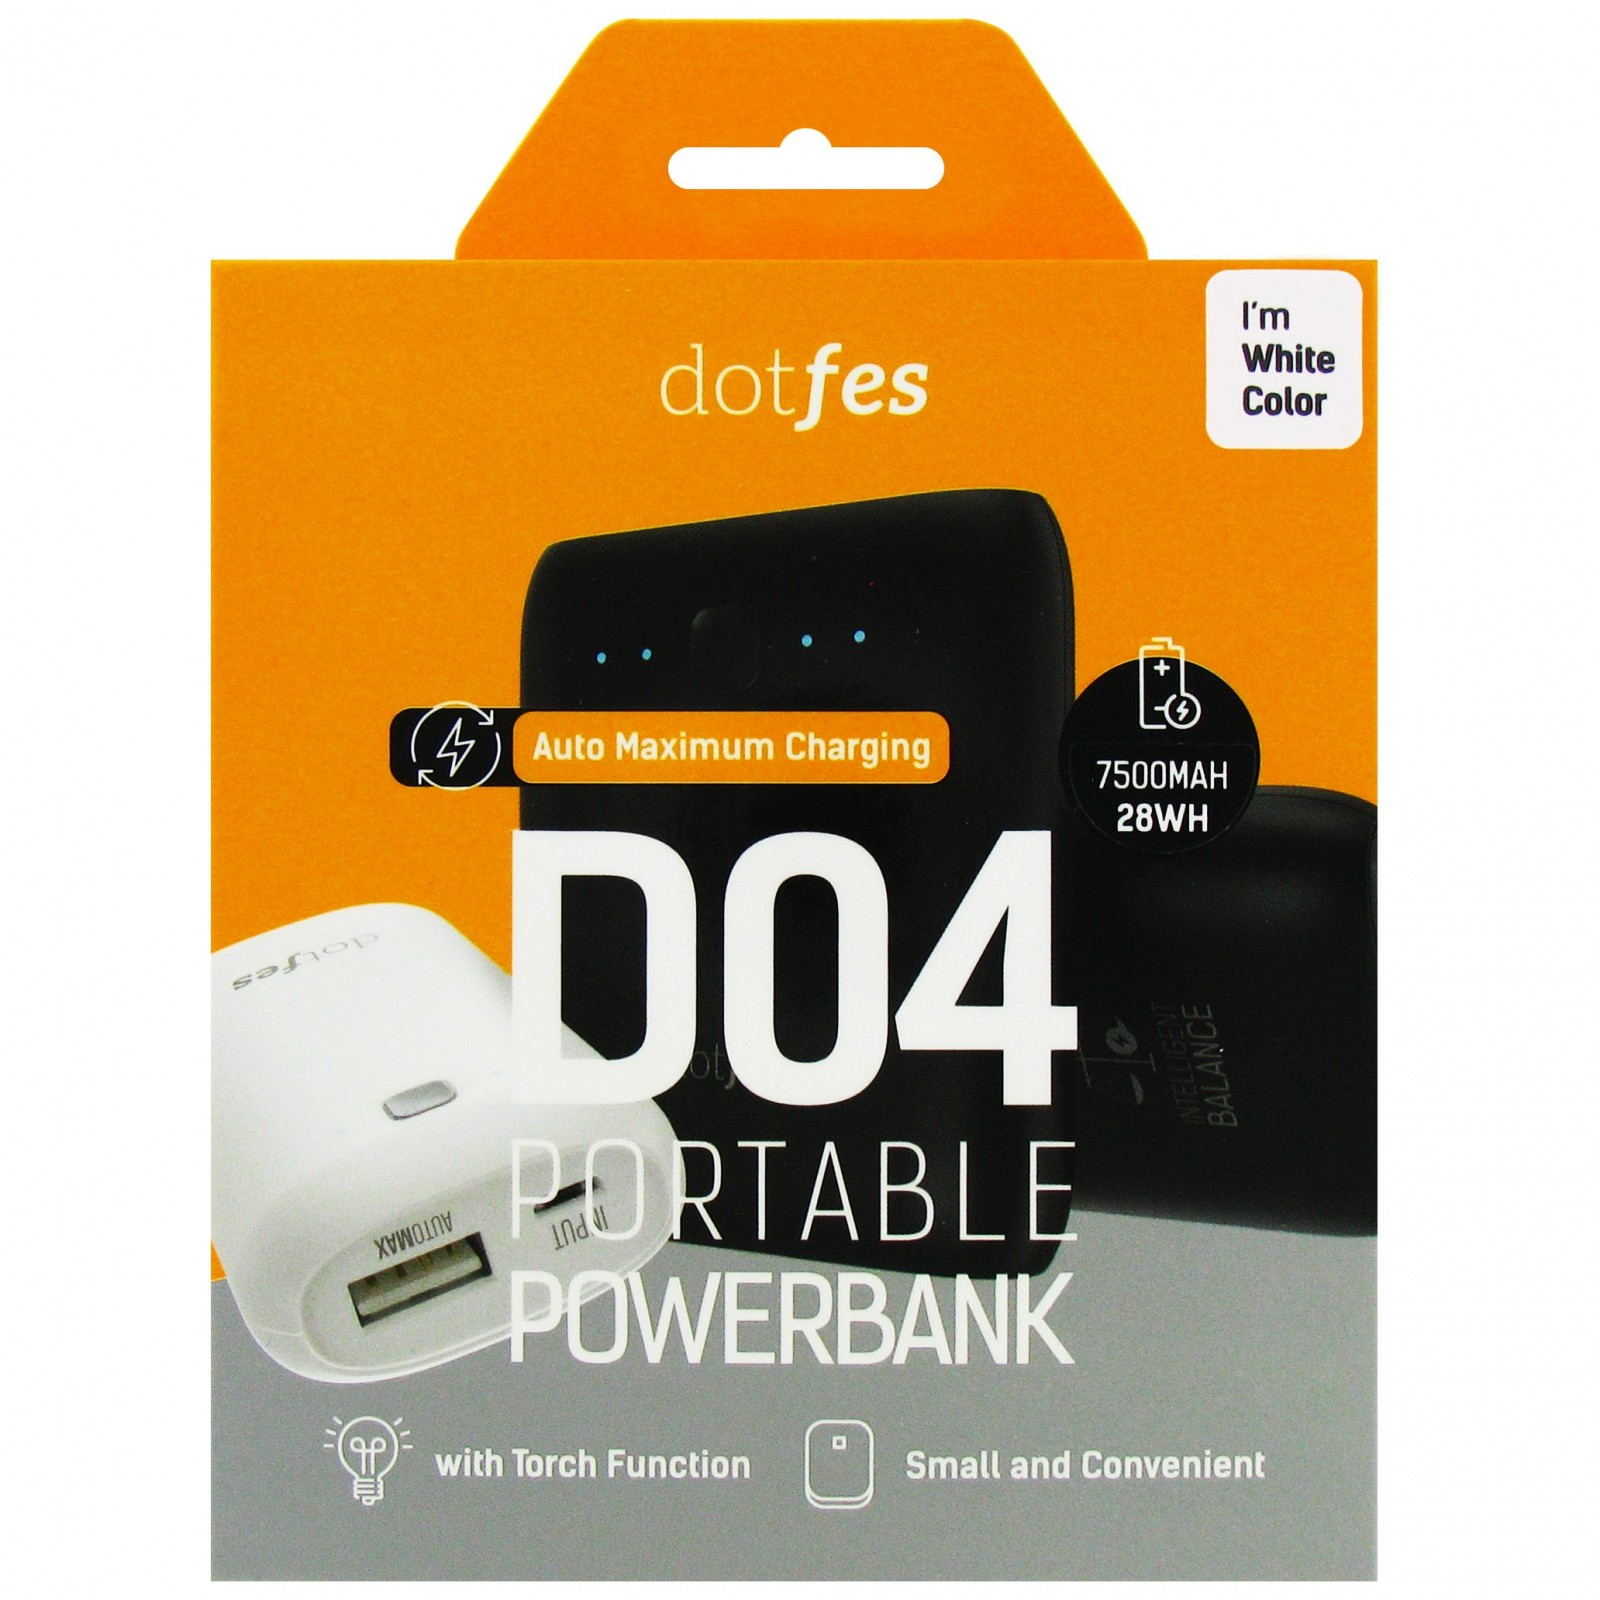 Аккумулятор внешний резервный Dotfes D04-7 7500mAh AutoMax, два USB выхода 1А / 2,1A + фонарик, white 1pcs right angle 90 degree usb 2 0 a male female adapter connecter for lap pc wholesale drop shipping